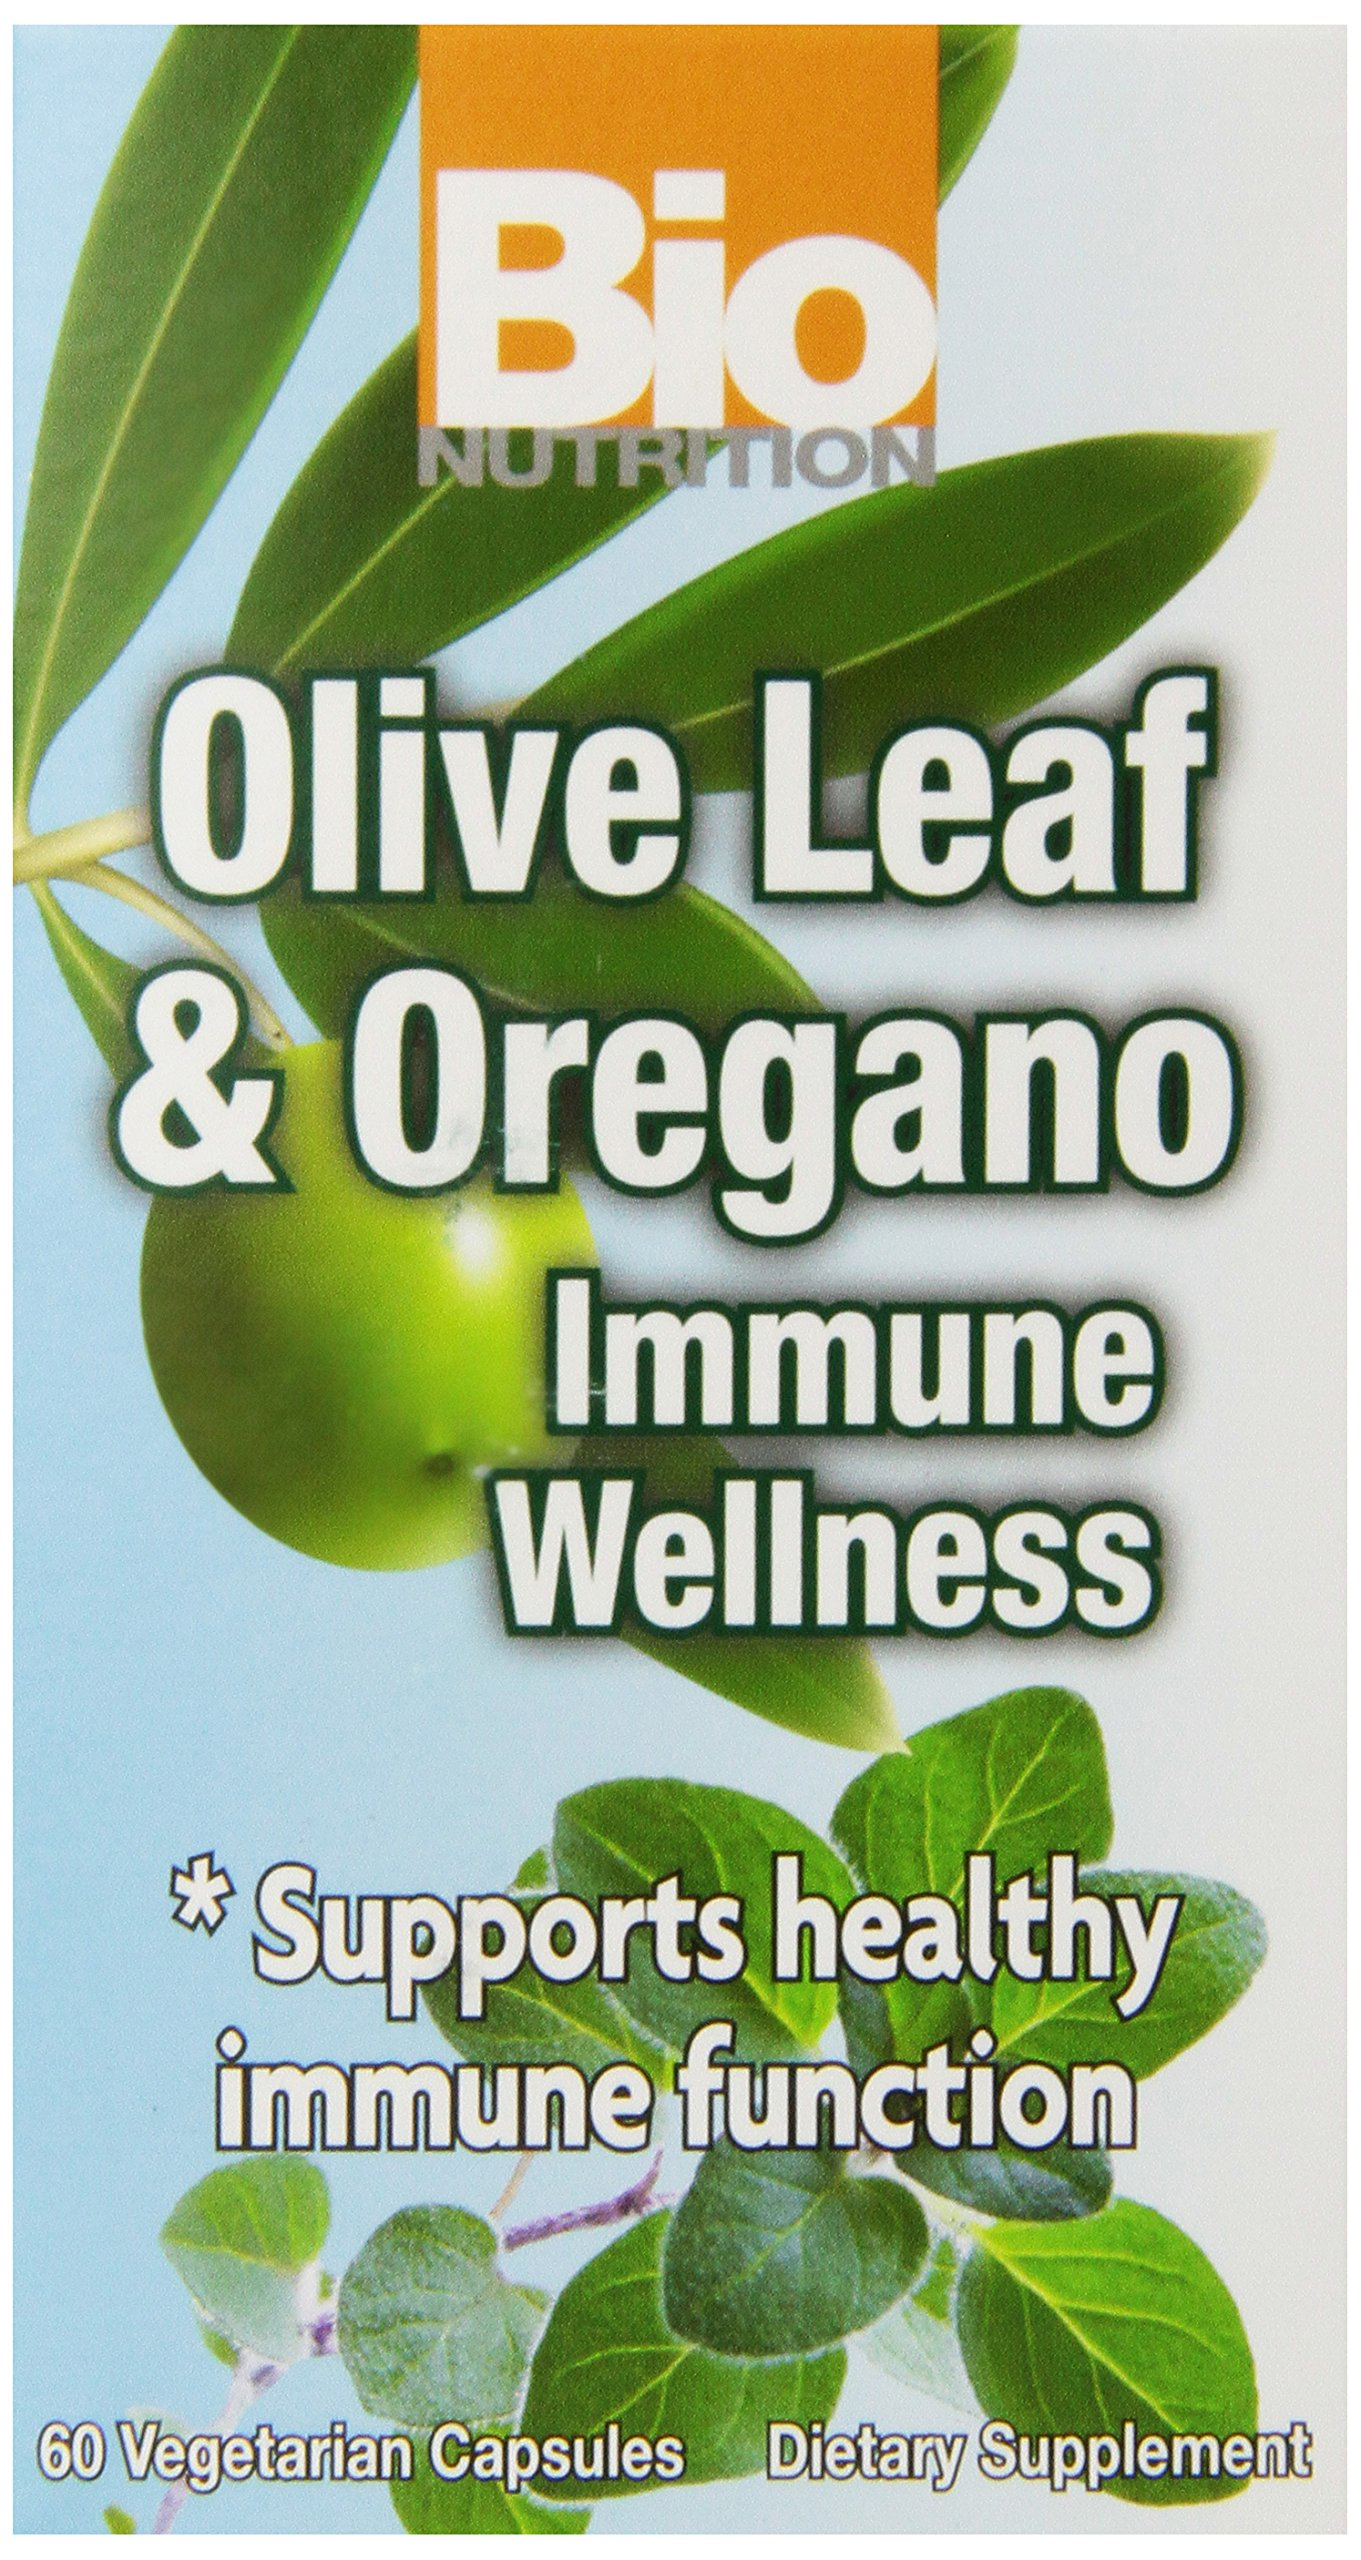 Bio Nutrition Immune Wellness Olive and Oregano Vegi-Caps, 60 Count by Bio Nutrition (Image #1)